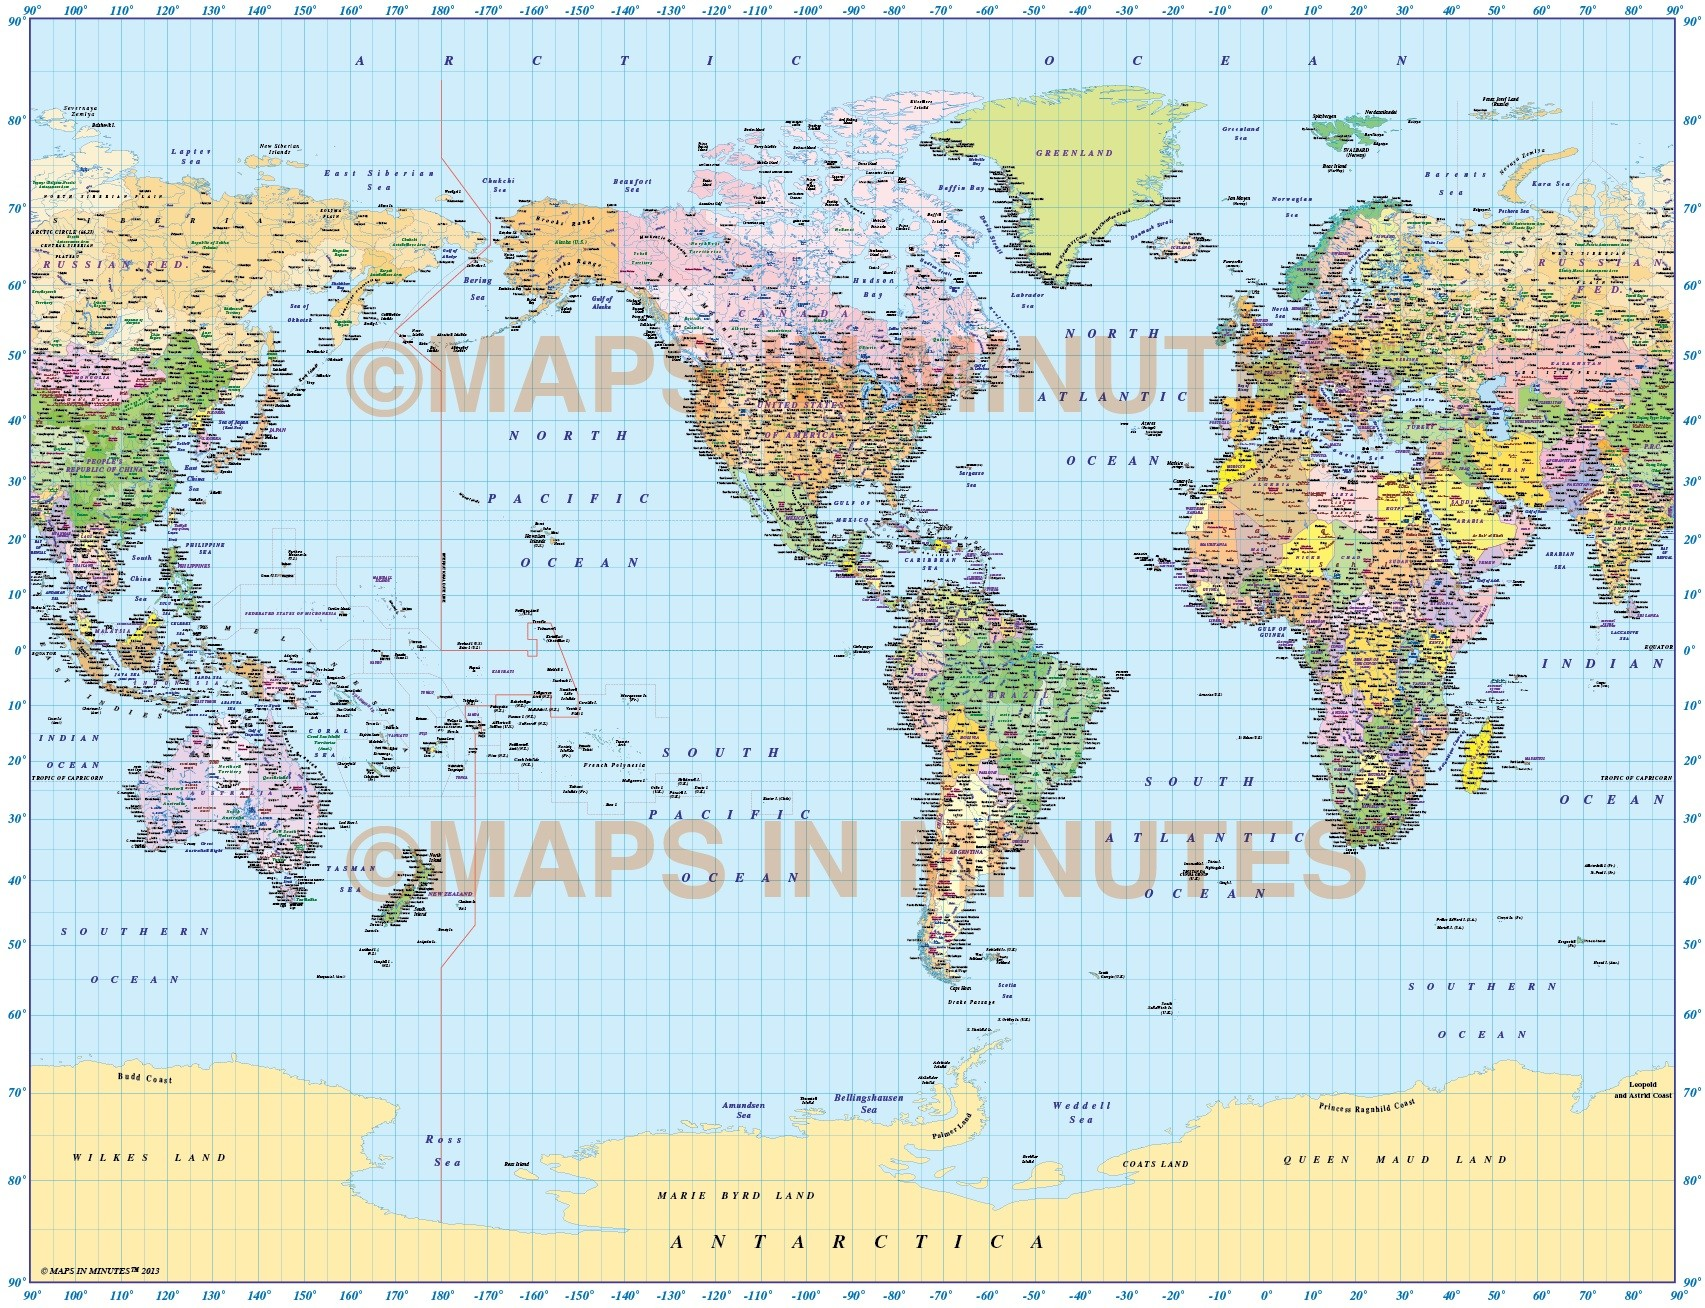 Us Centric World Map Vector world map, Gall Projection Political map (US centric) @10M